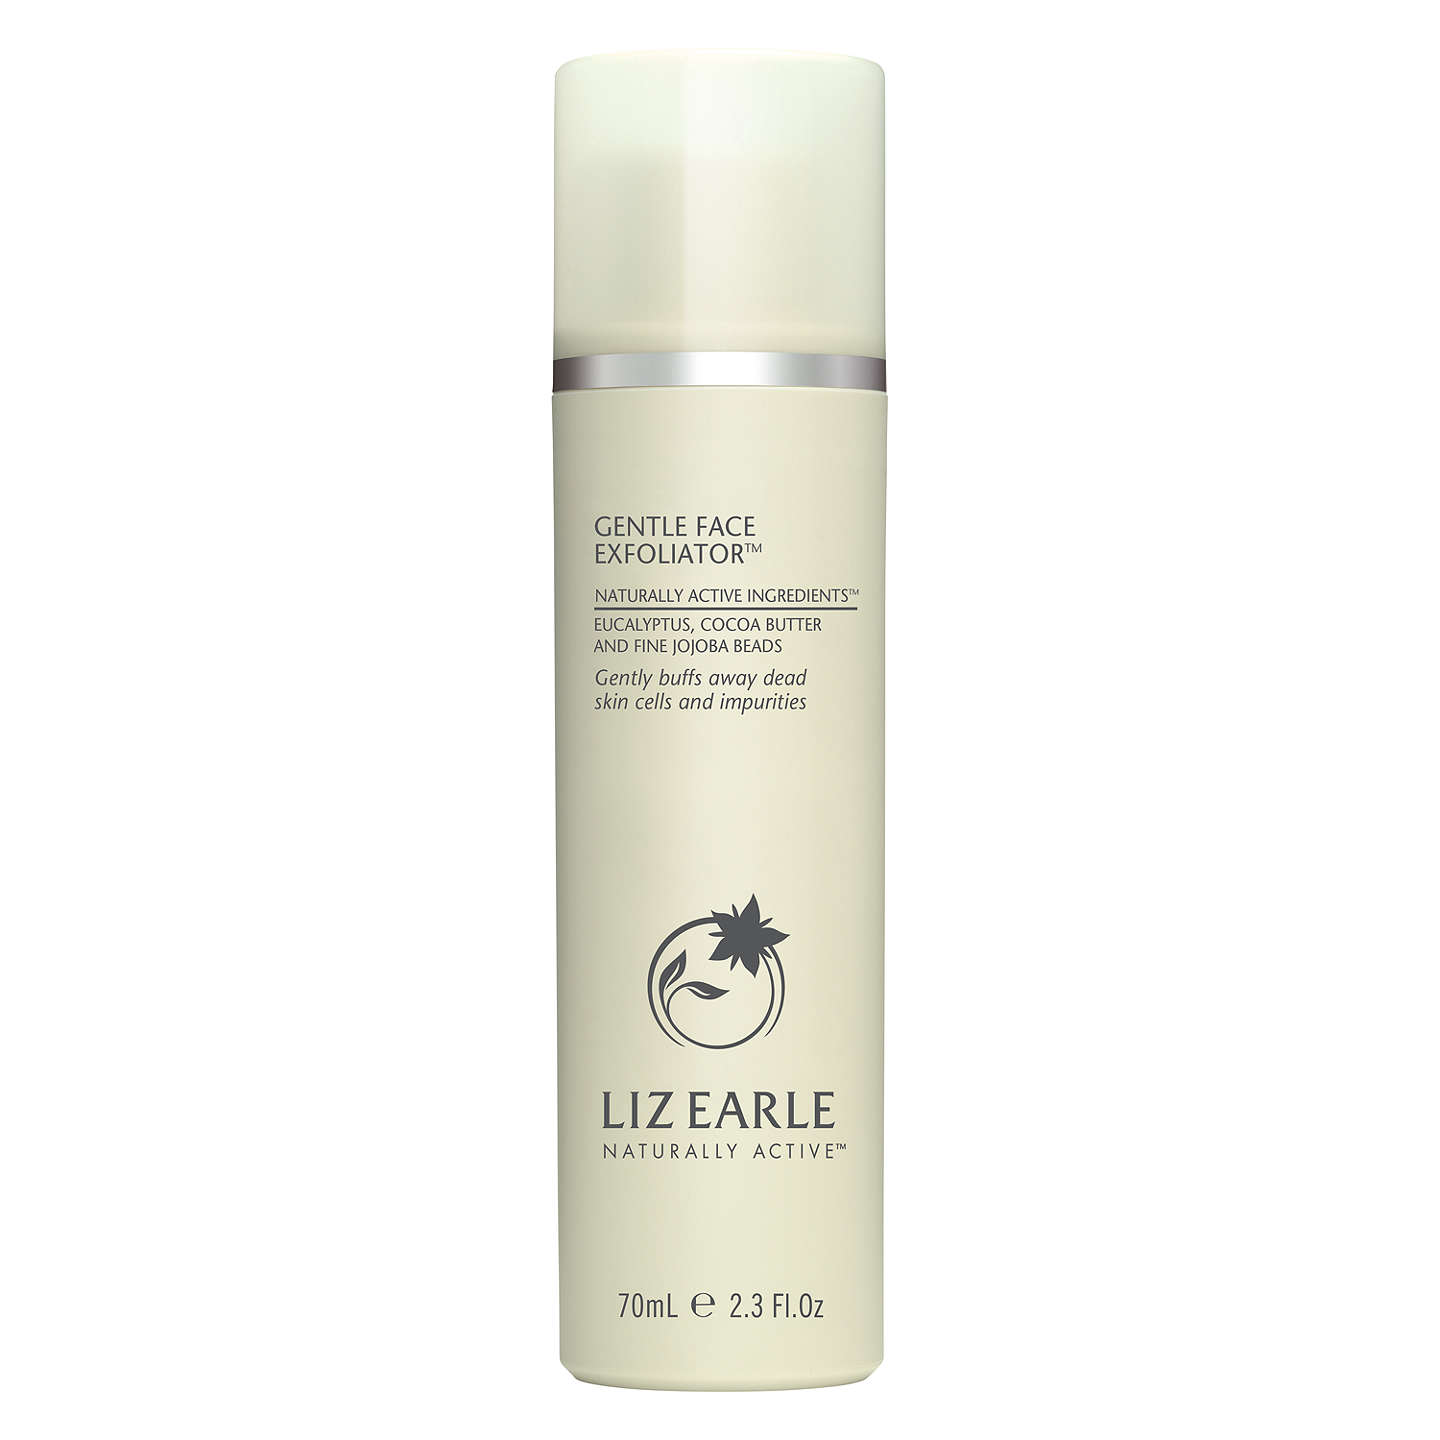 BuyLiz Earle Gentle Face Exfoliator™, 70ml Online at johnlewis.com